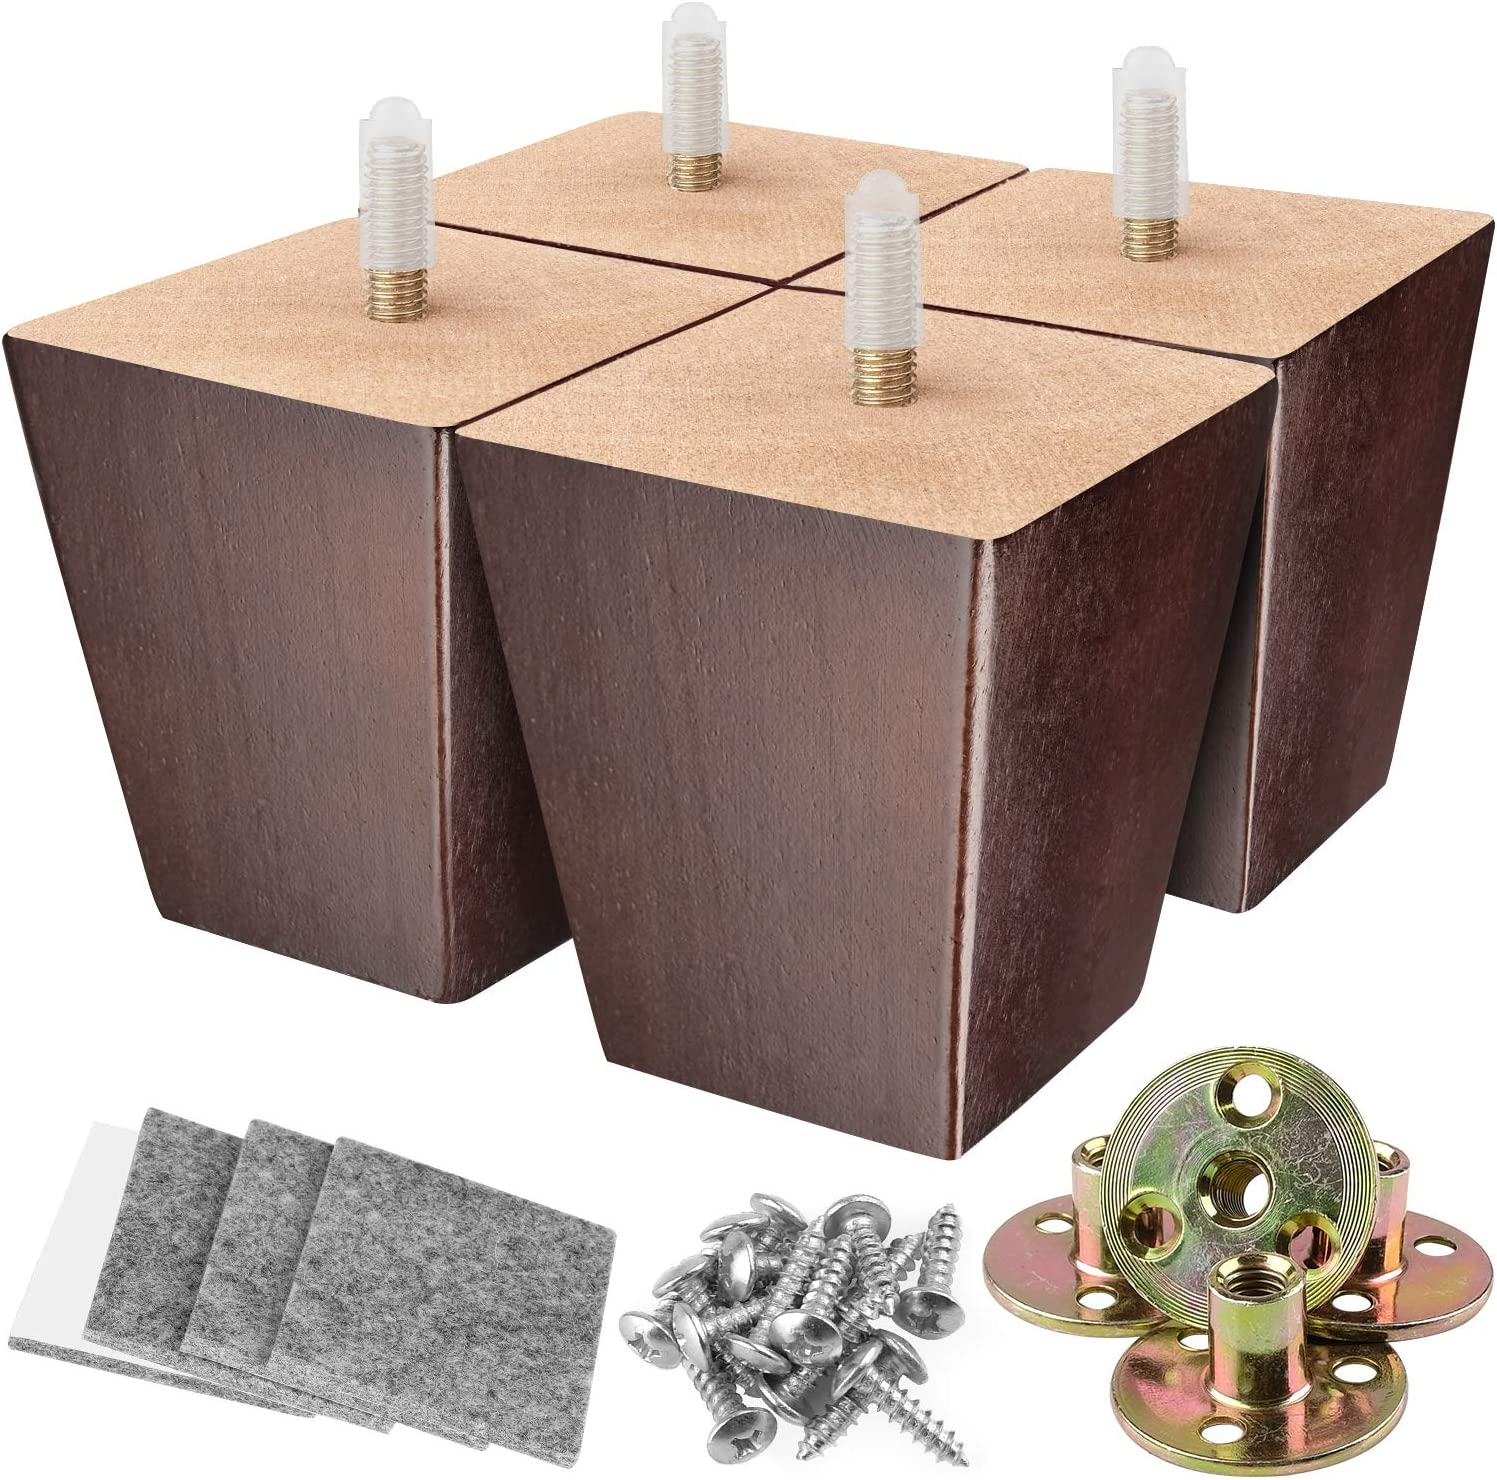 Furniture Legs 3 Inches Sofa Legs Square Couch Legs Mid Century Modern Walnut Wood Furniture Feet Replacement Legs with Mounting Plates Set & Felt Protectors for Sofa Cabinet Couch Bed Chair